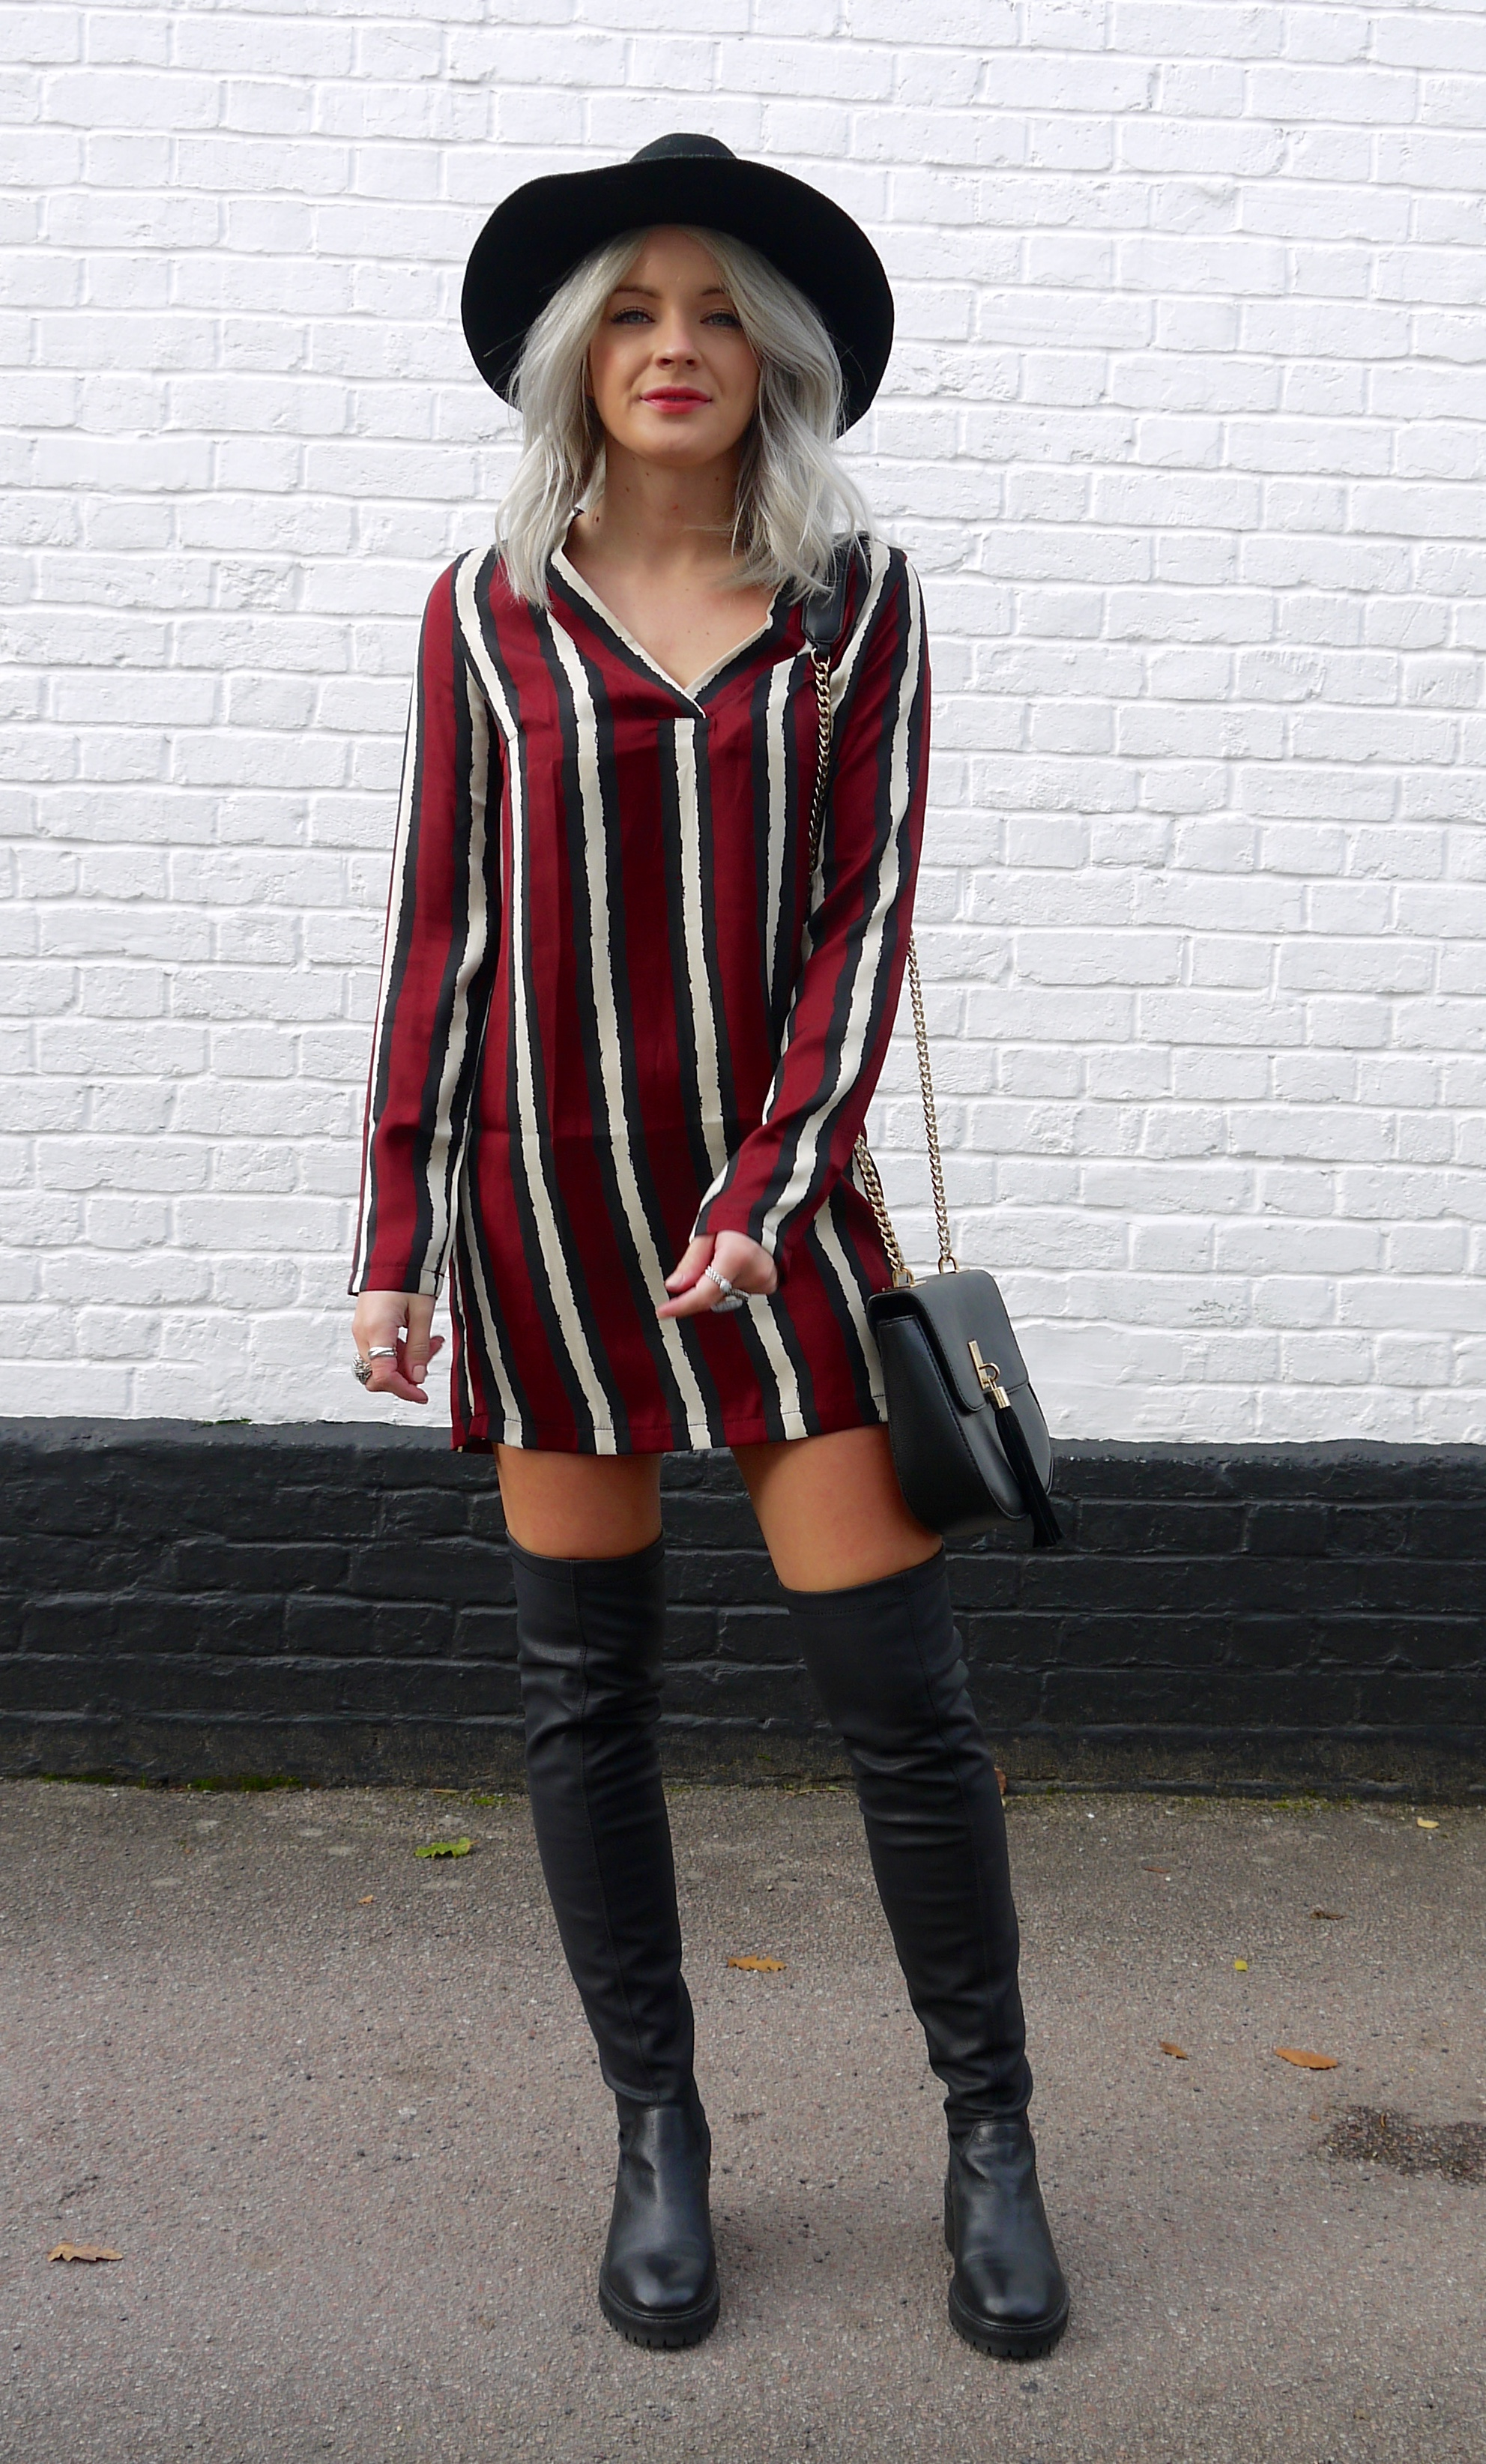 missguided burgandy stripe dress, silly stripe dress, t-shirt dress, over the knee boots, black boots, topshop destroy boots, grey hair, grey wavy hair, fashion blogger, lauras little locket, laura byrnes